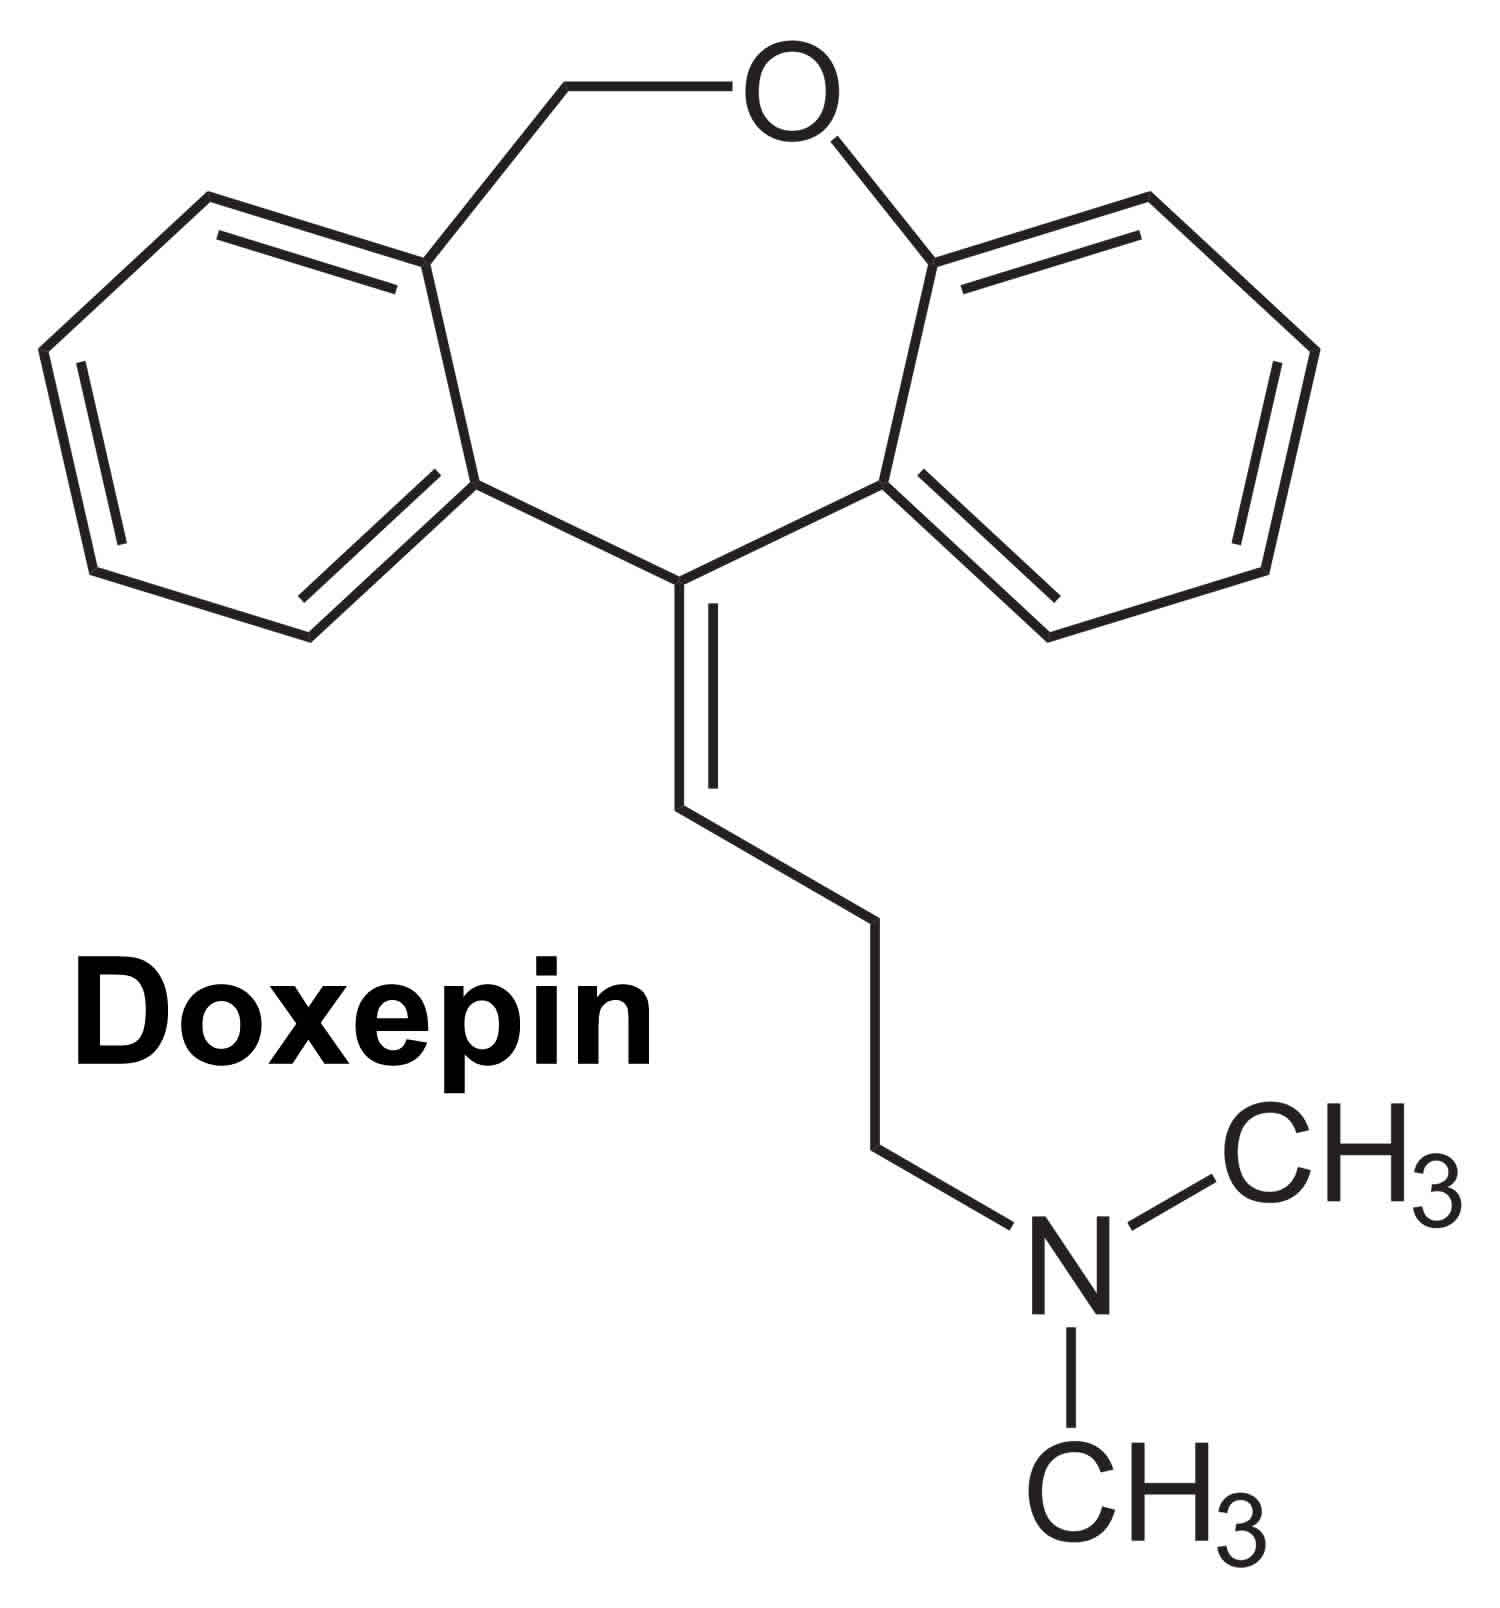 Doxepin uses, dosage for sleep or insomnia and doxepin